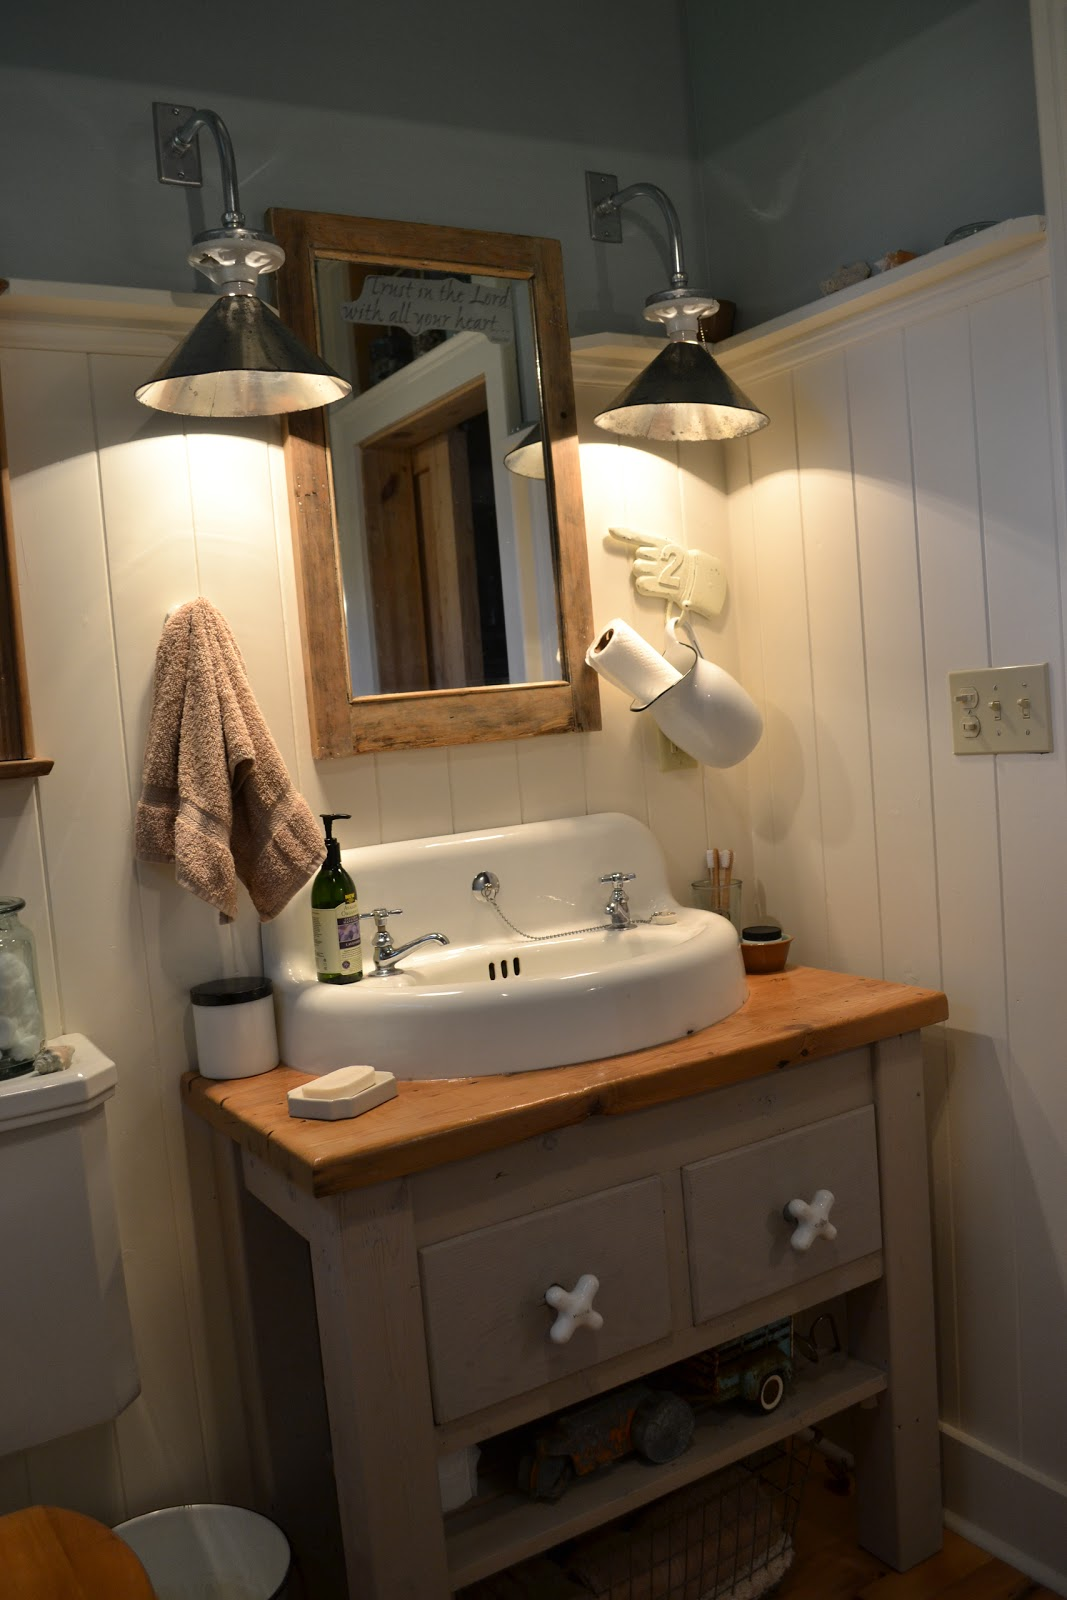 Bathroom Vanity Lights Farmhouse : The 1829 Farmhouse: farmhouse tour: bathroom